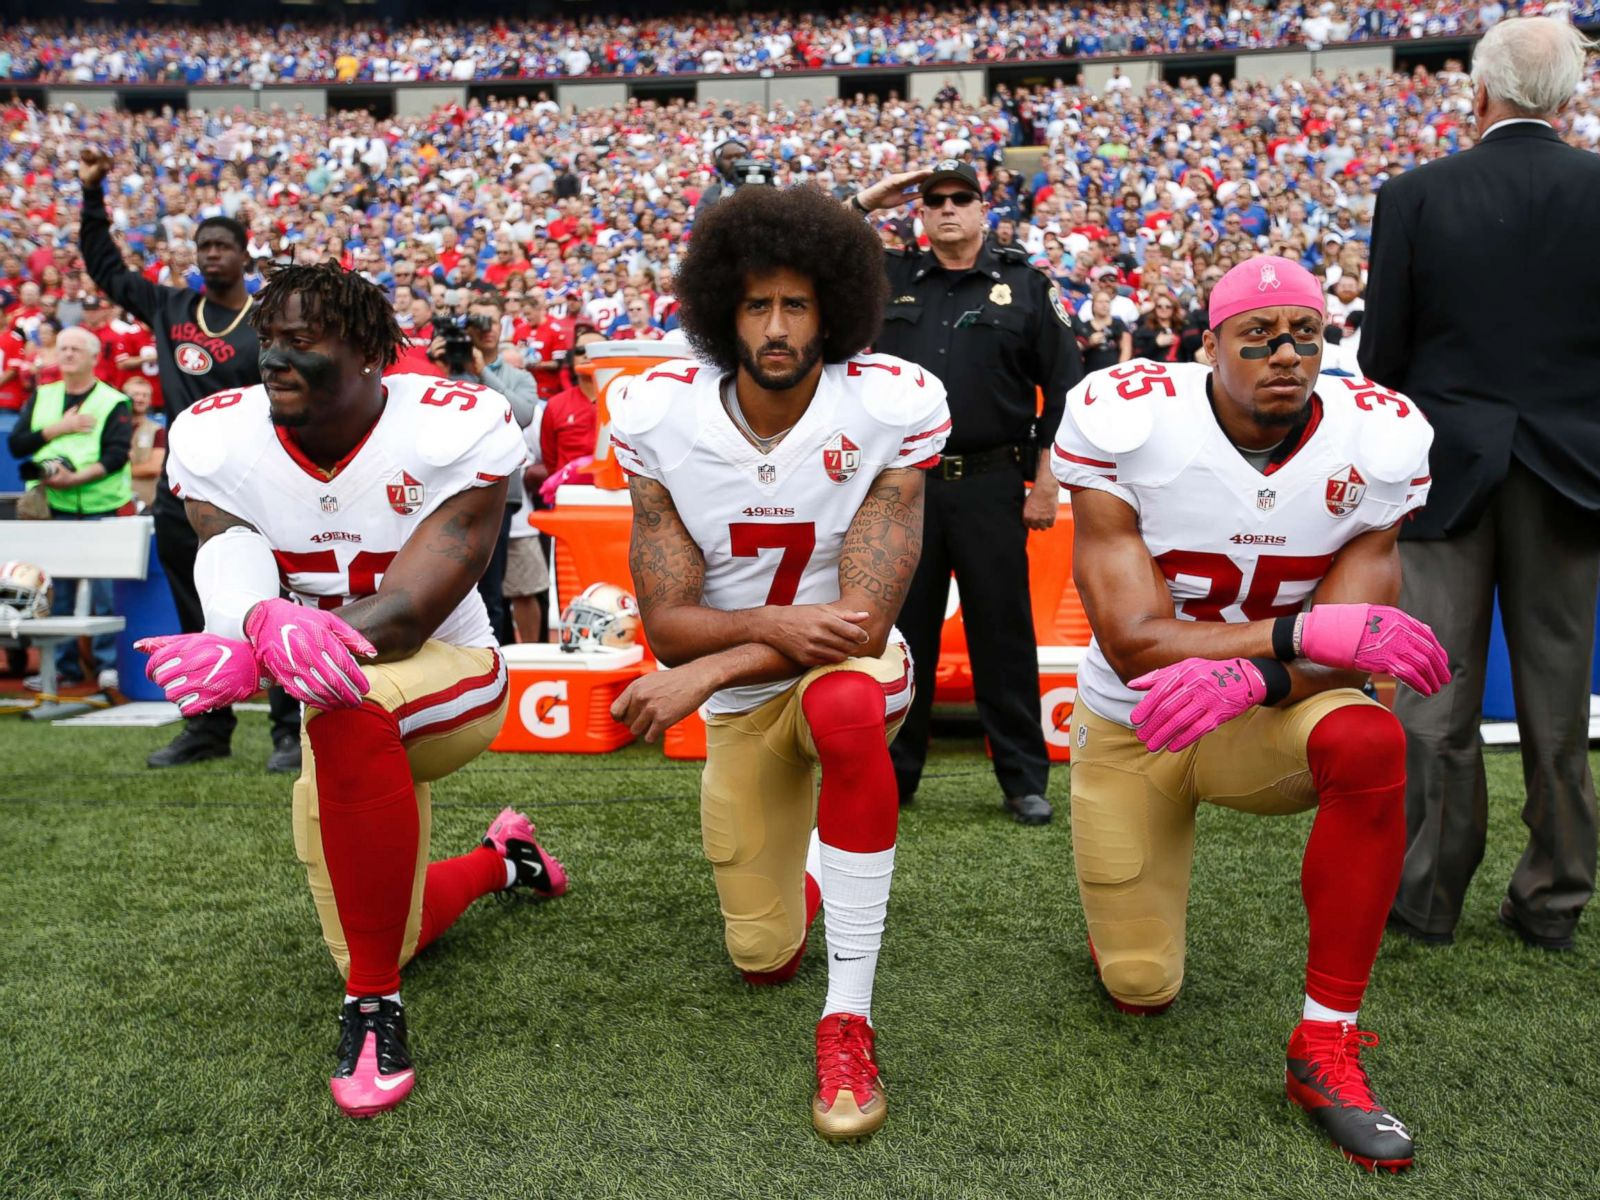 4bf8b7706857 Taking a knee wasn't the first time athletes protested social injustice on  the field - ABC News